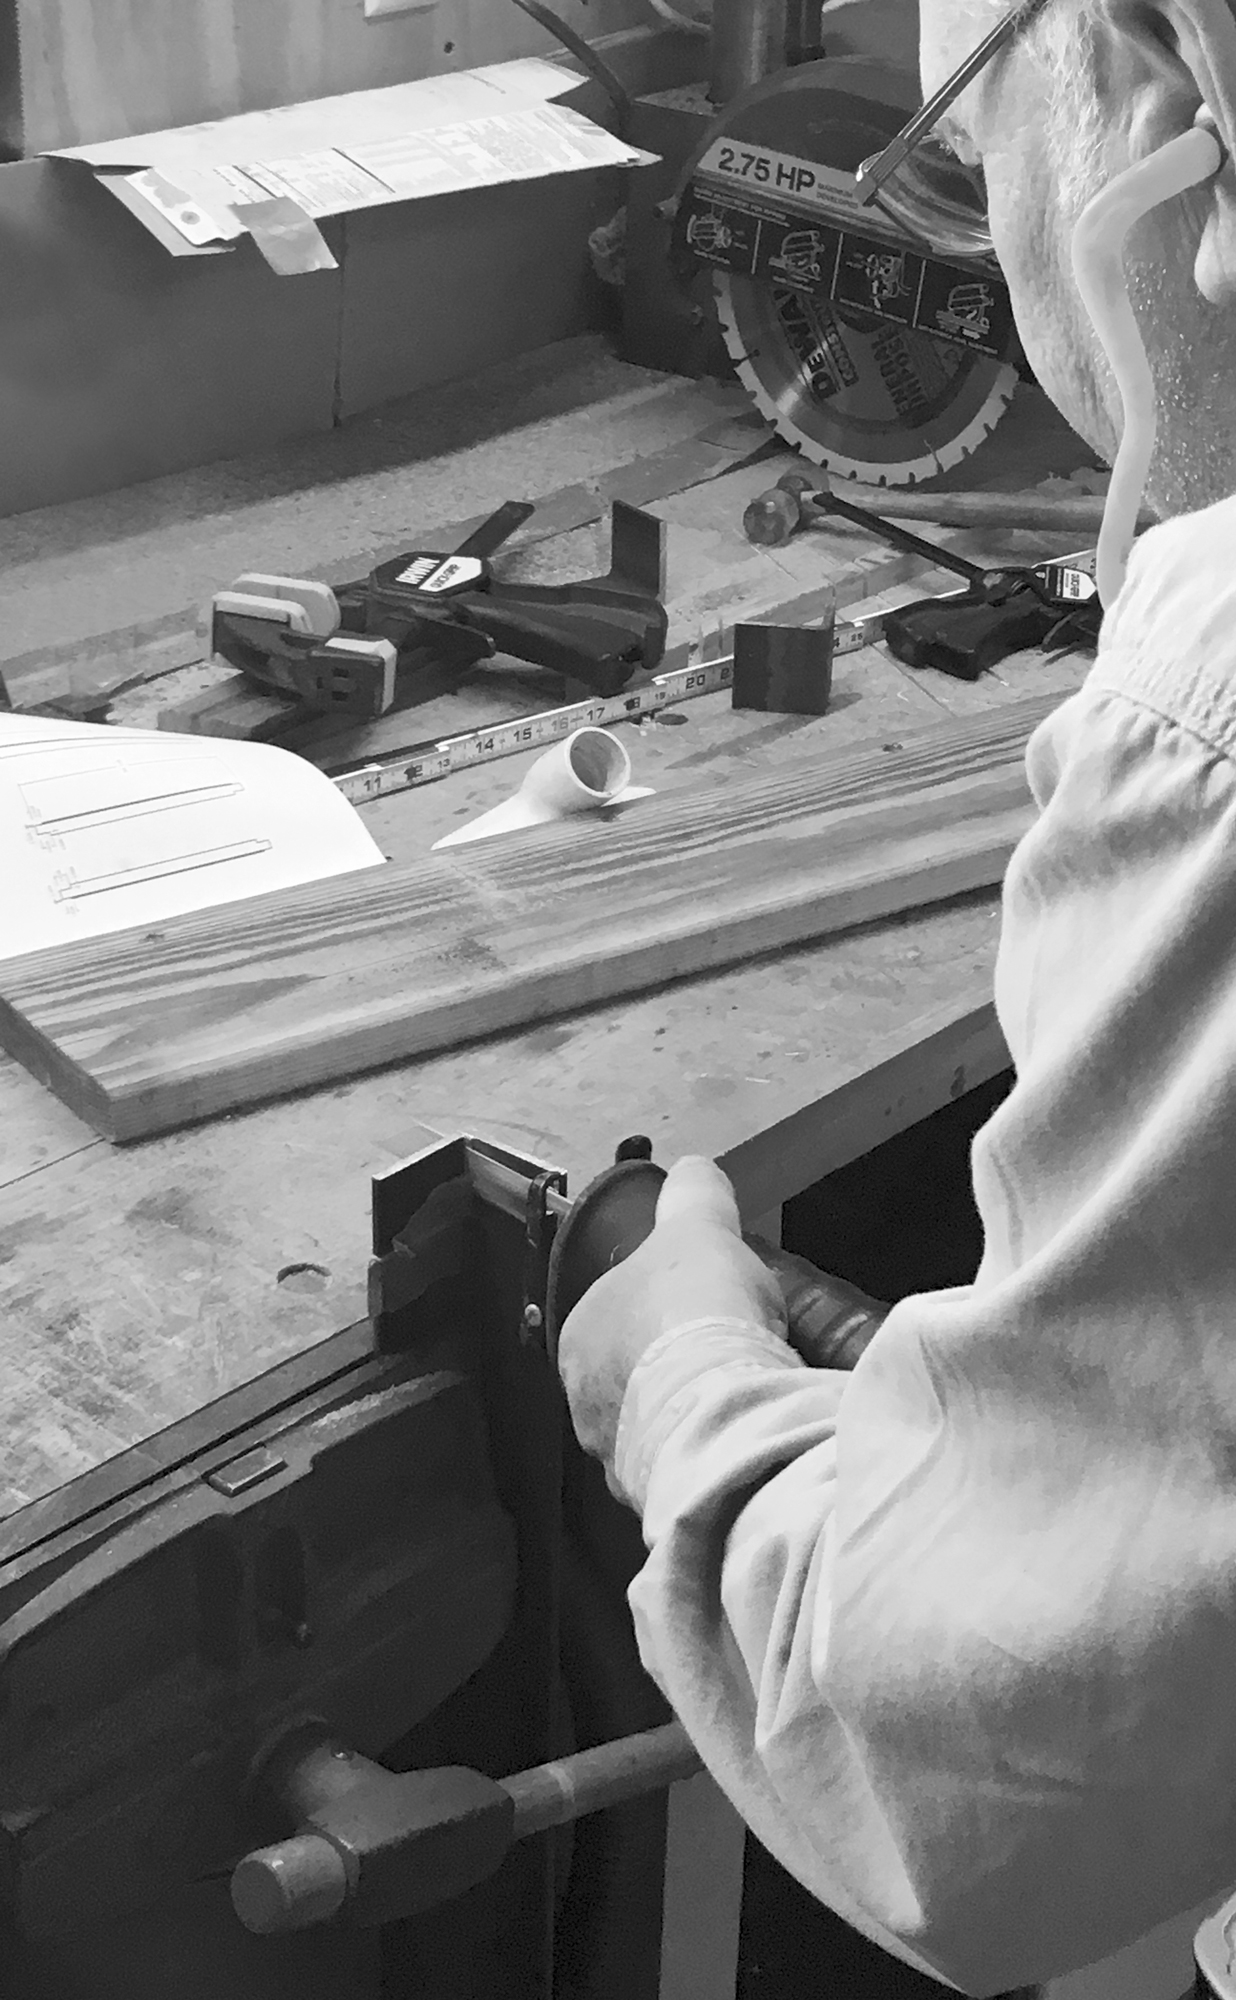 Precision corner cuts. Fine tuned cuts with a reciprocal saw.